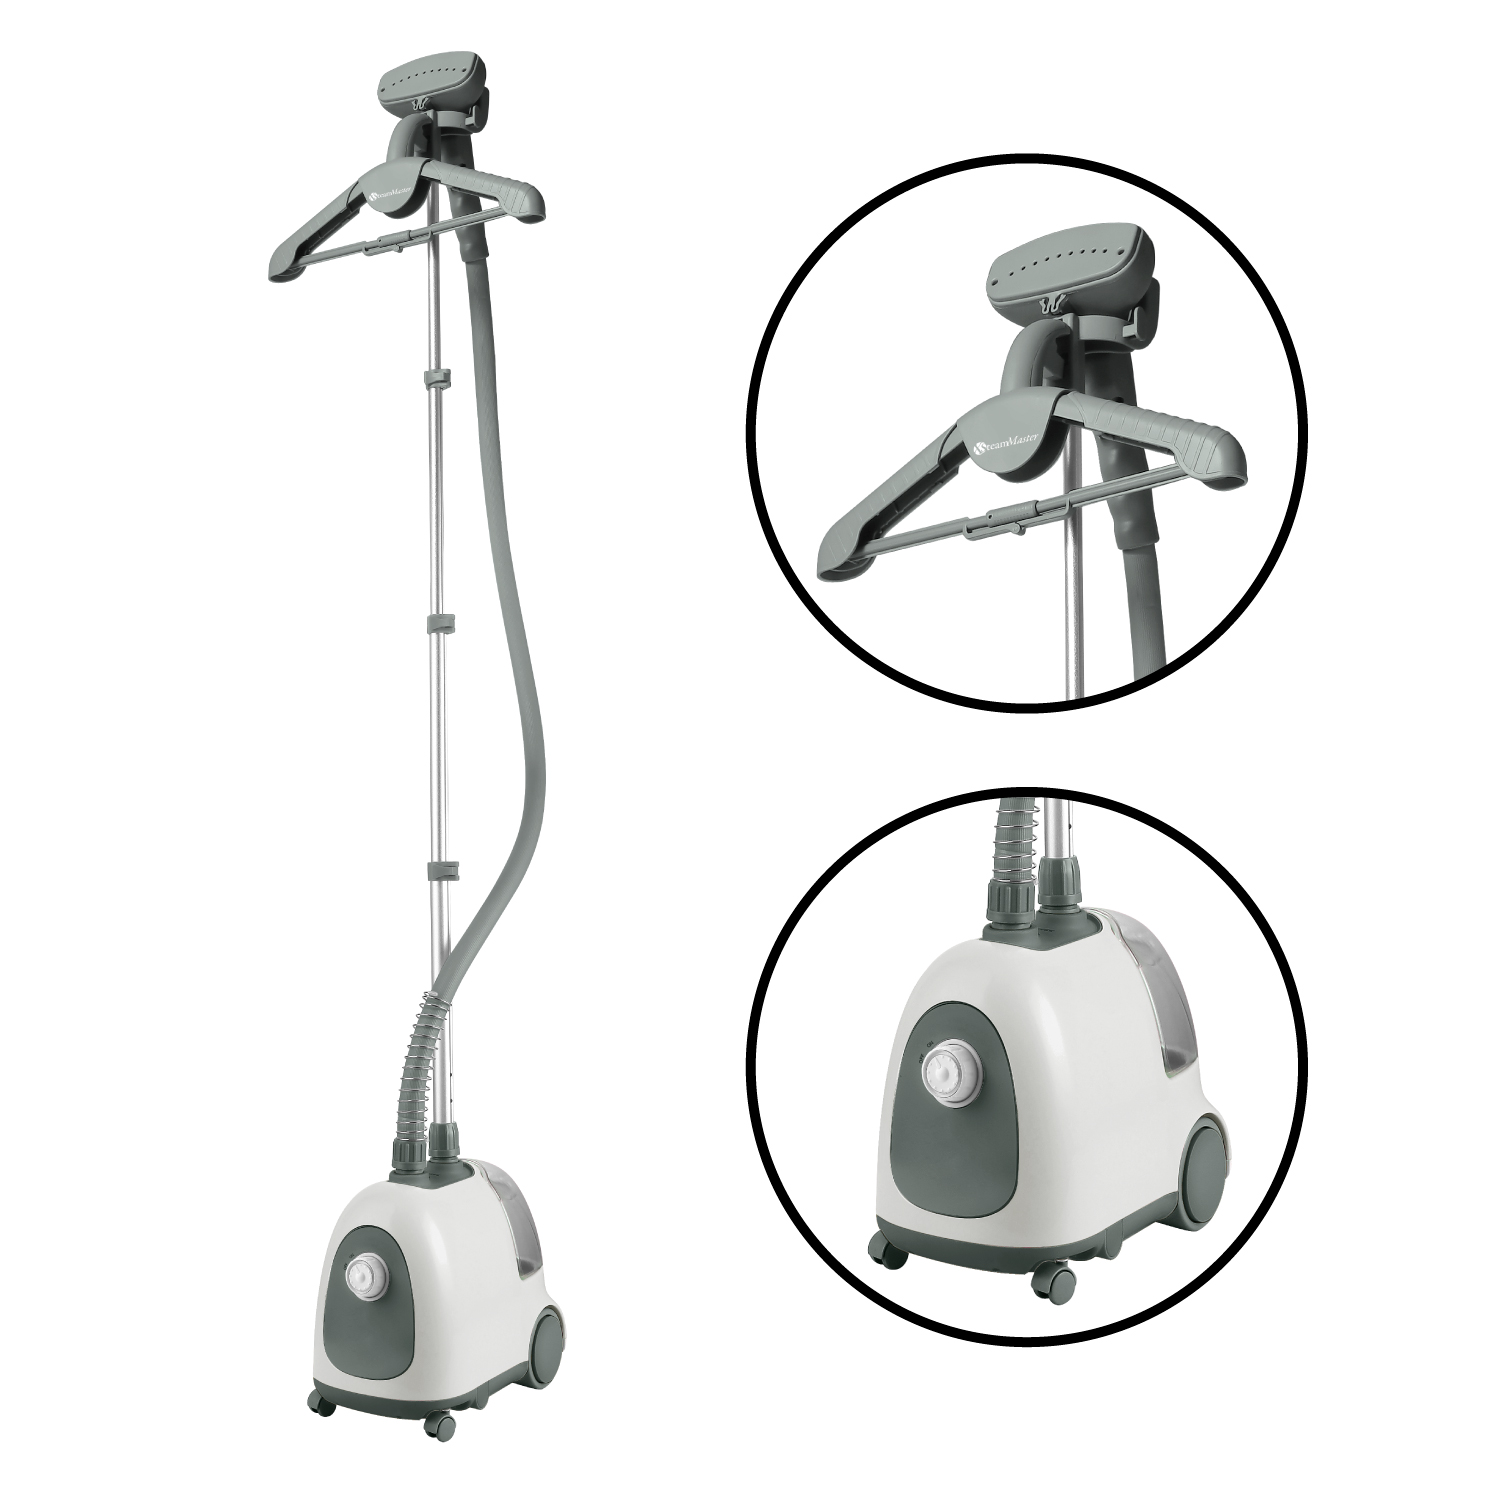 Steam and Go Professional Garment Steamer with Garment Hanger and Fabric Brush White Gray by